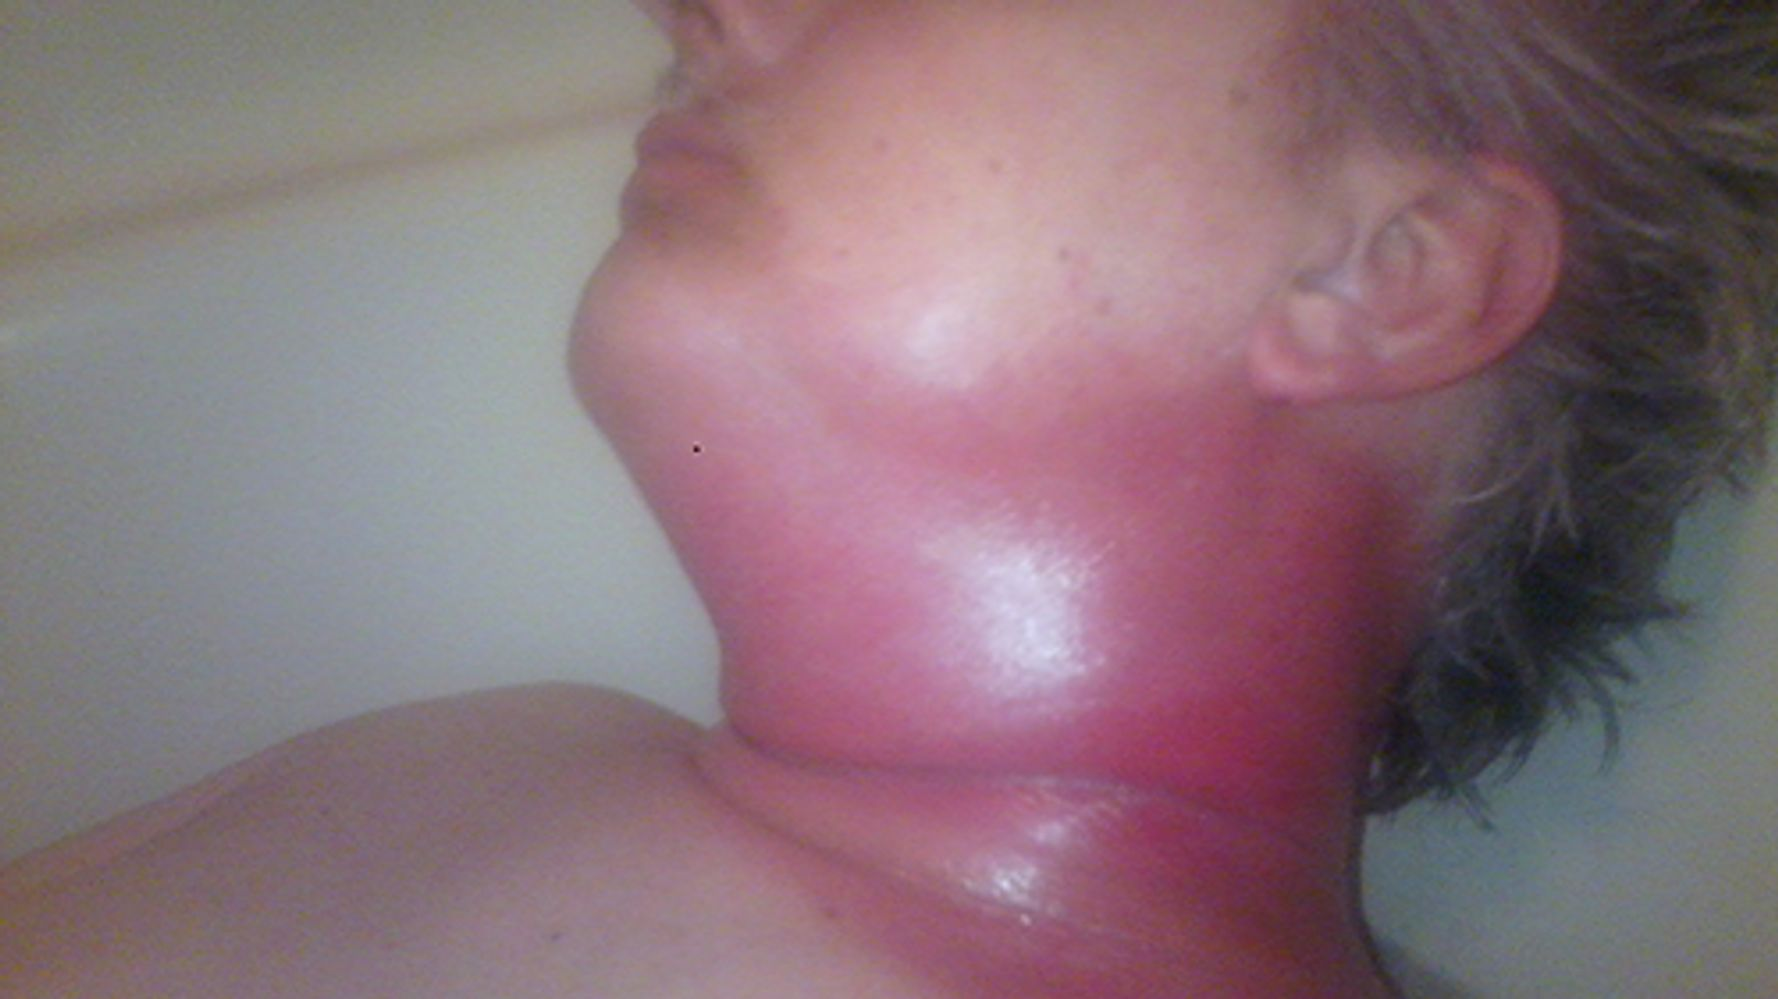 Hpv burning throat. Esophageal cancer caused by hpv